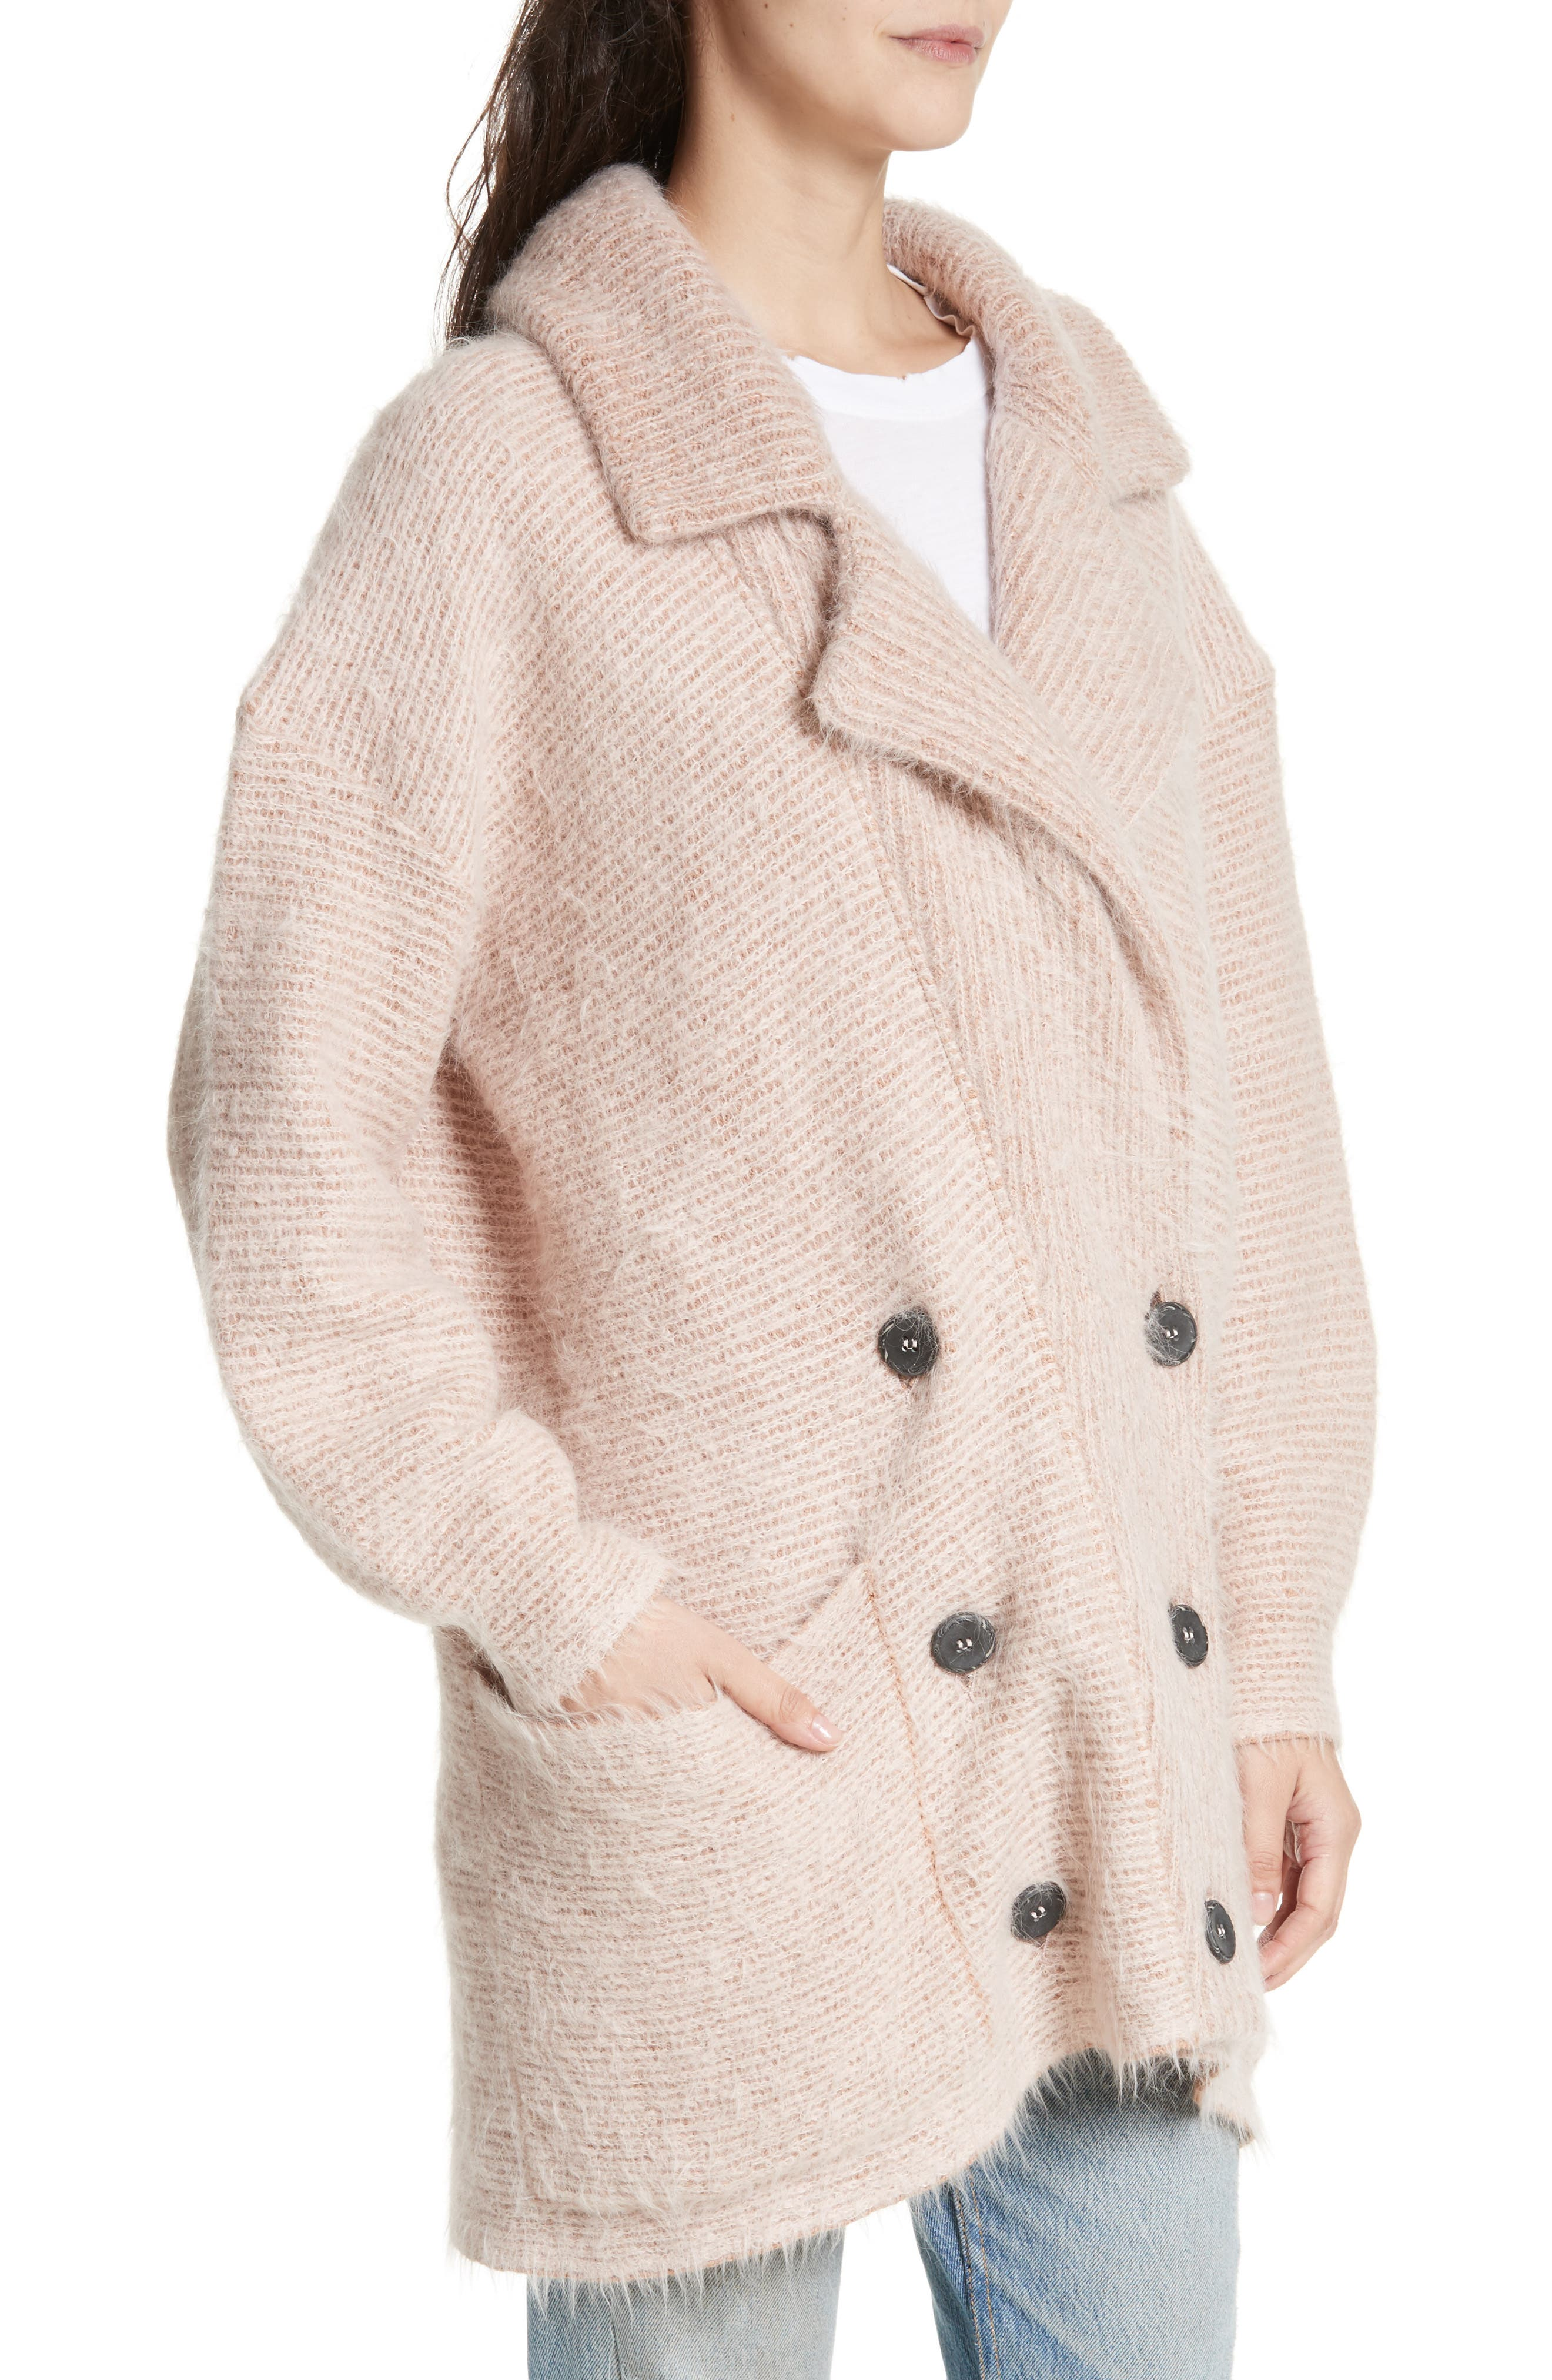 Take Two Sweater Coat,                             Alternate thumbnail 4, color,